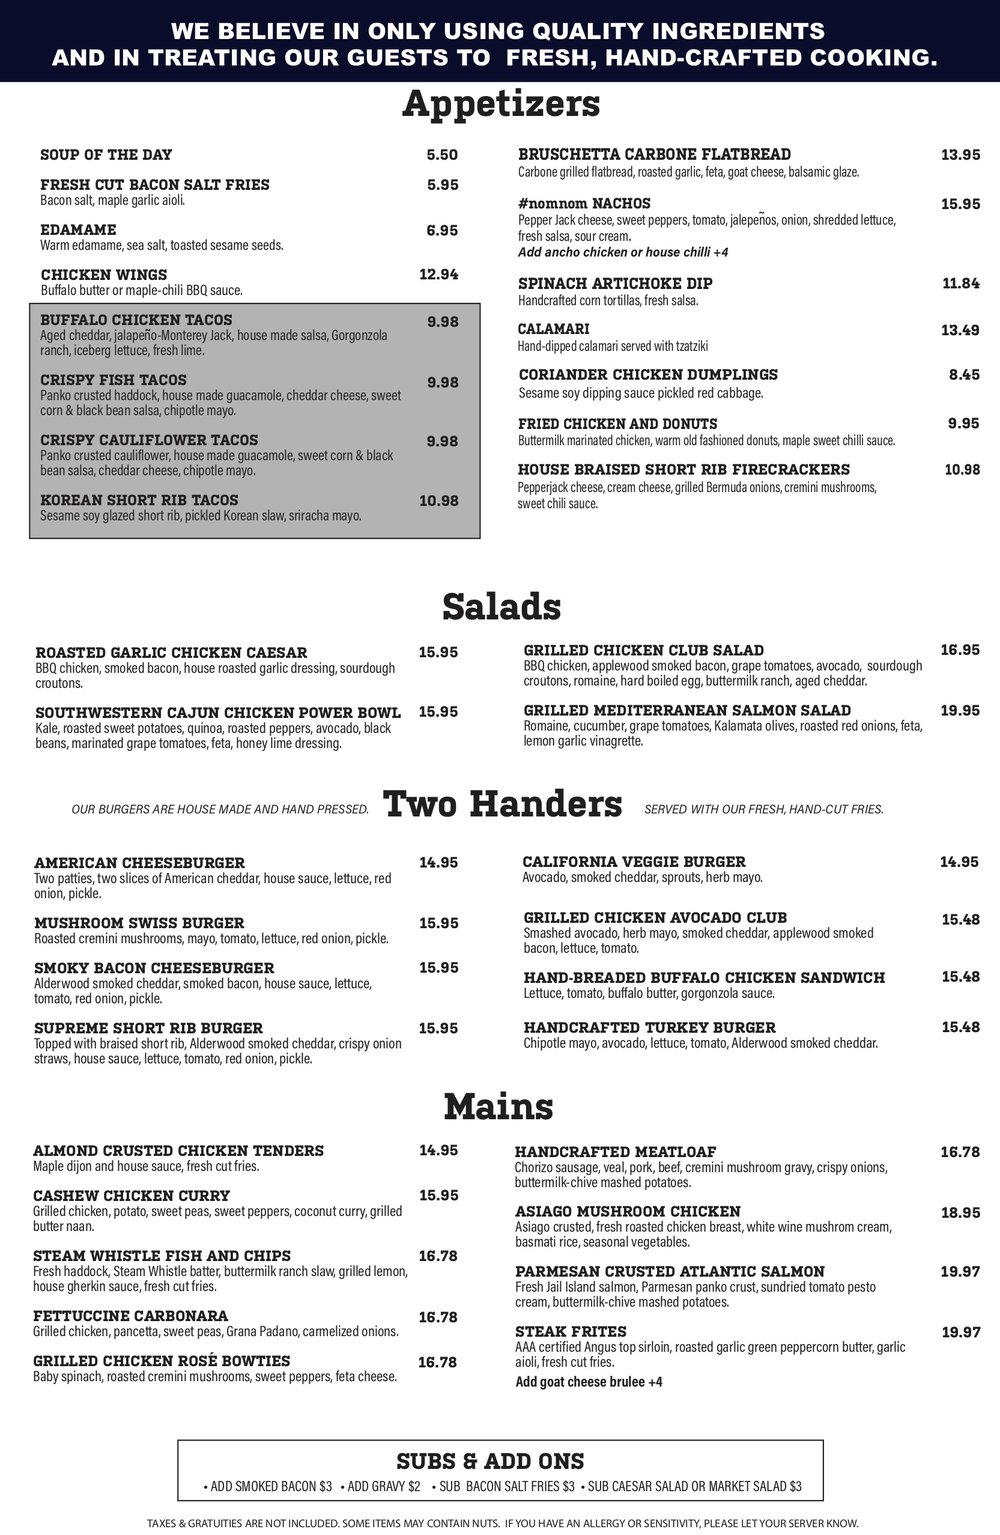 social eatery NEW menu november 2108.jpg